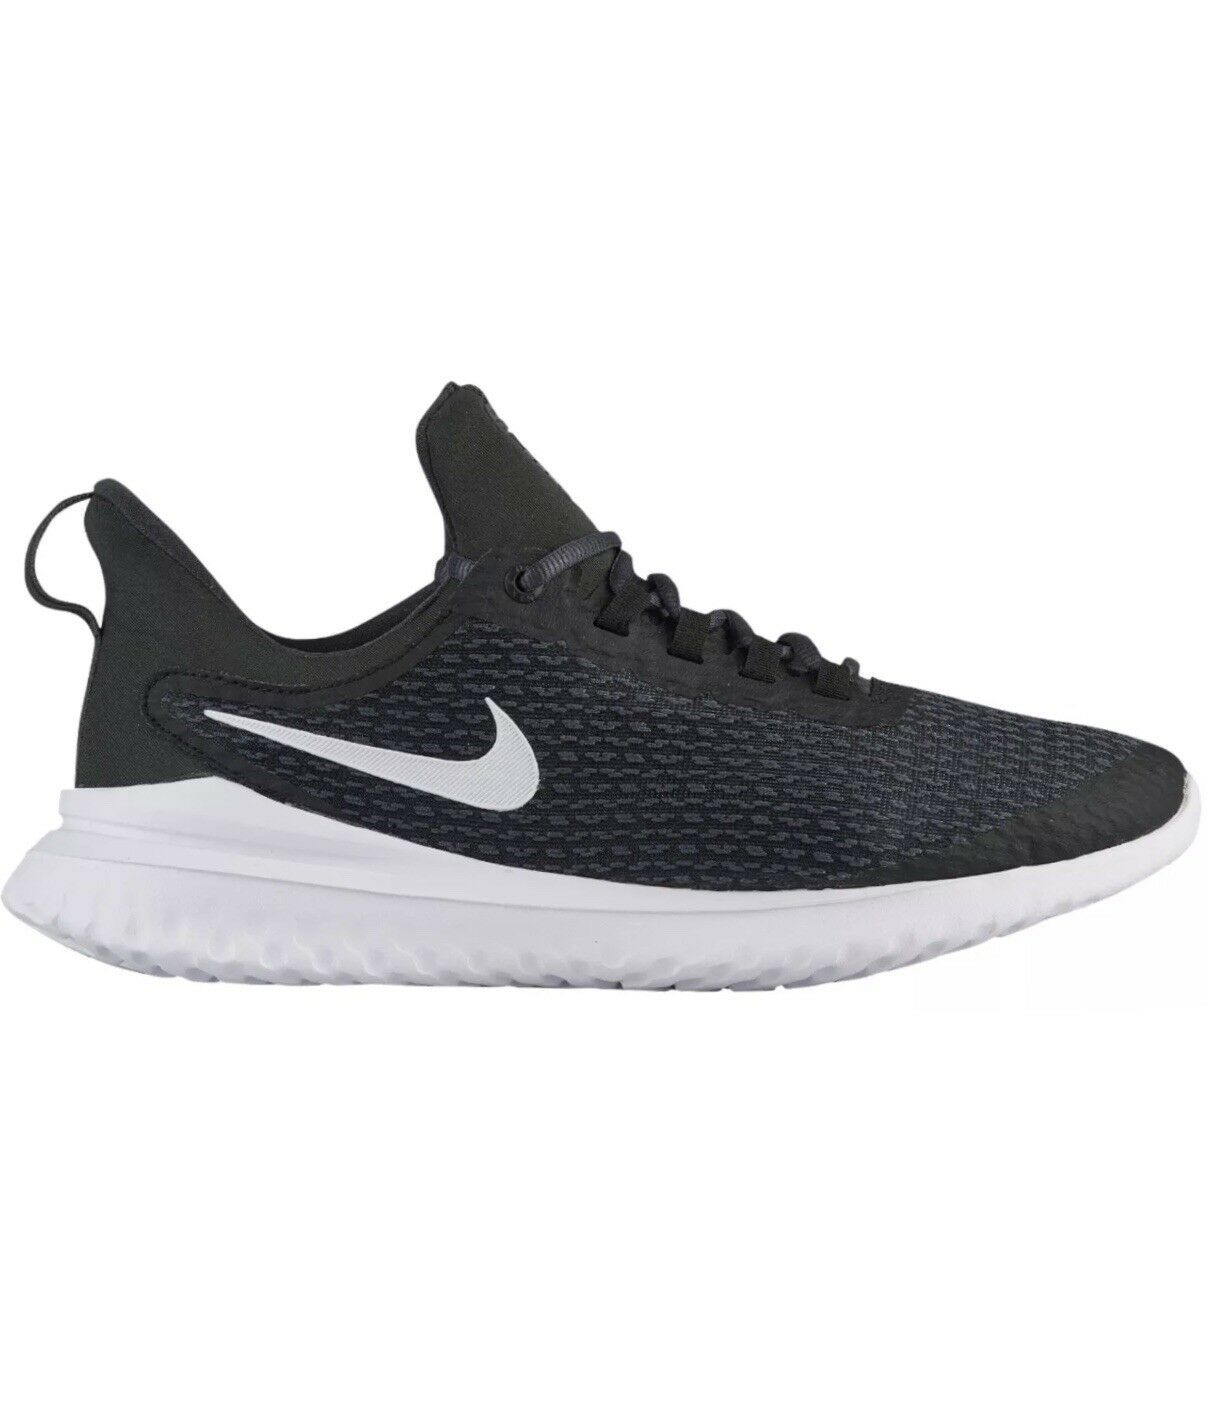 New NIKE RENEW RIVAL - JA7400-300 MEN'S Black White Anthracite Running shoes c1